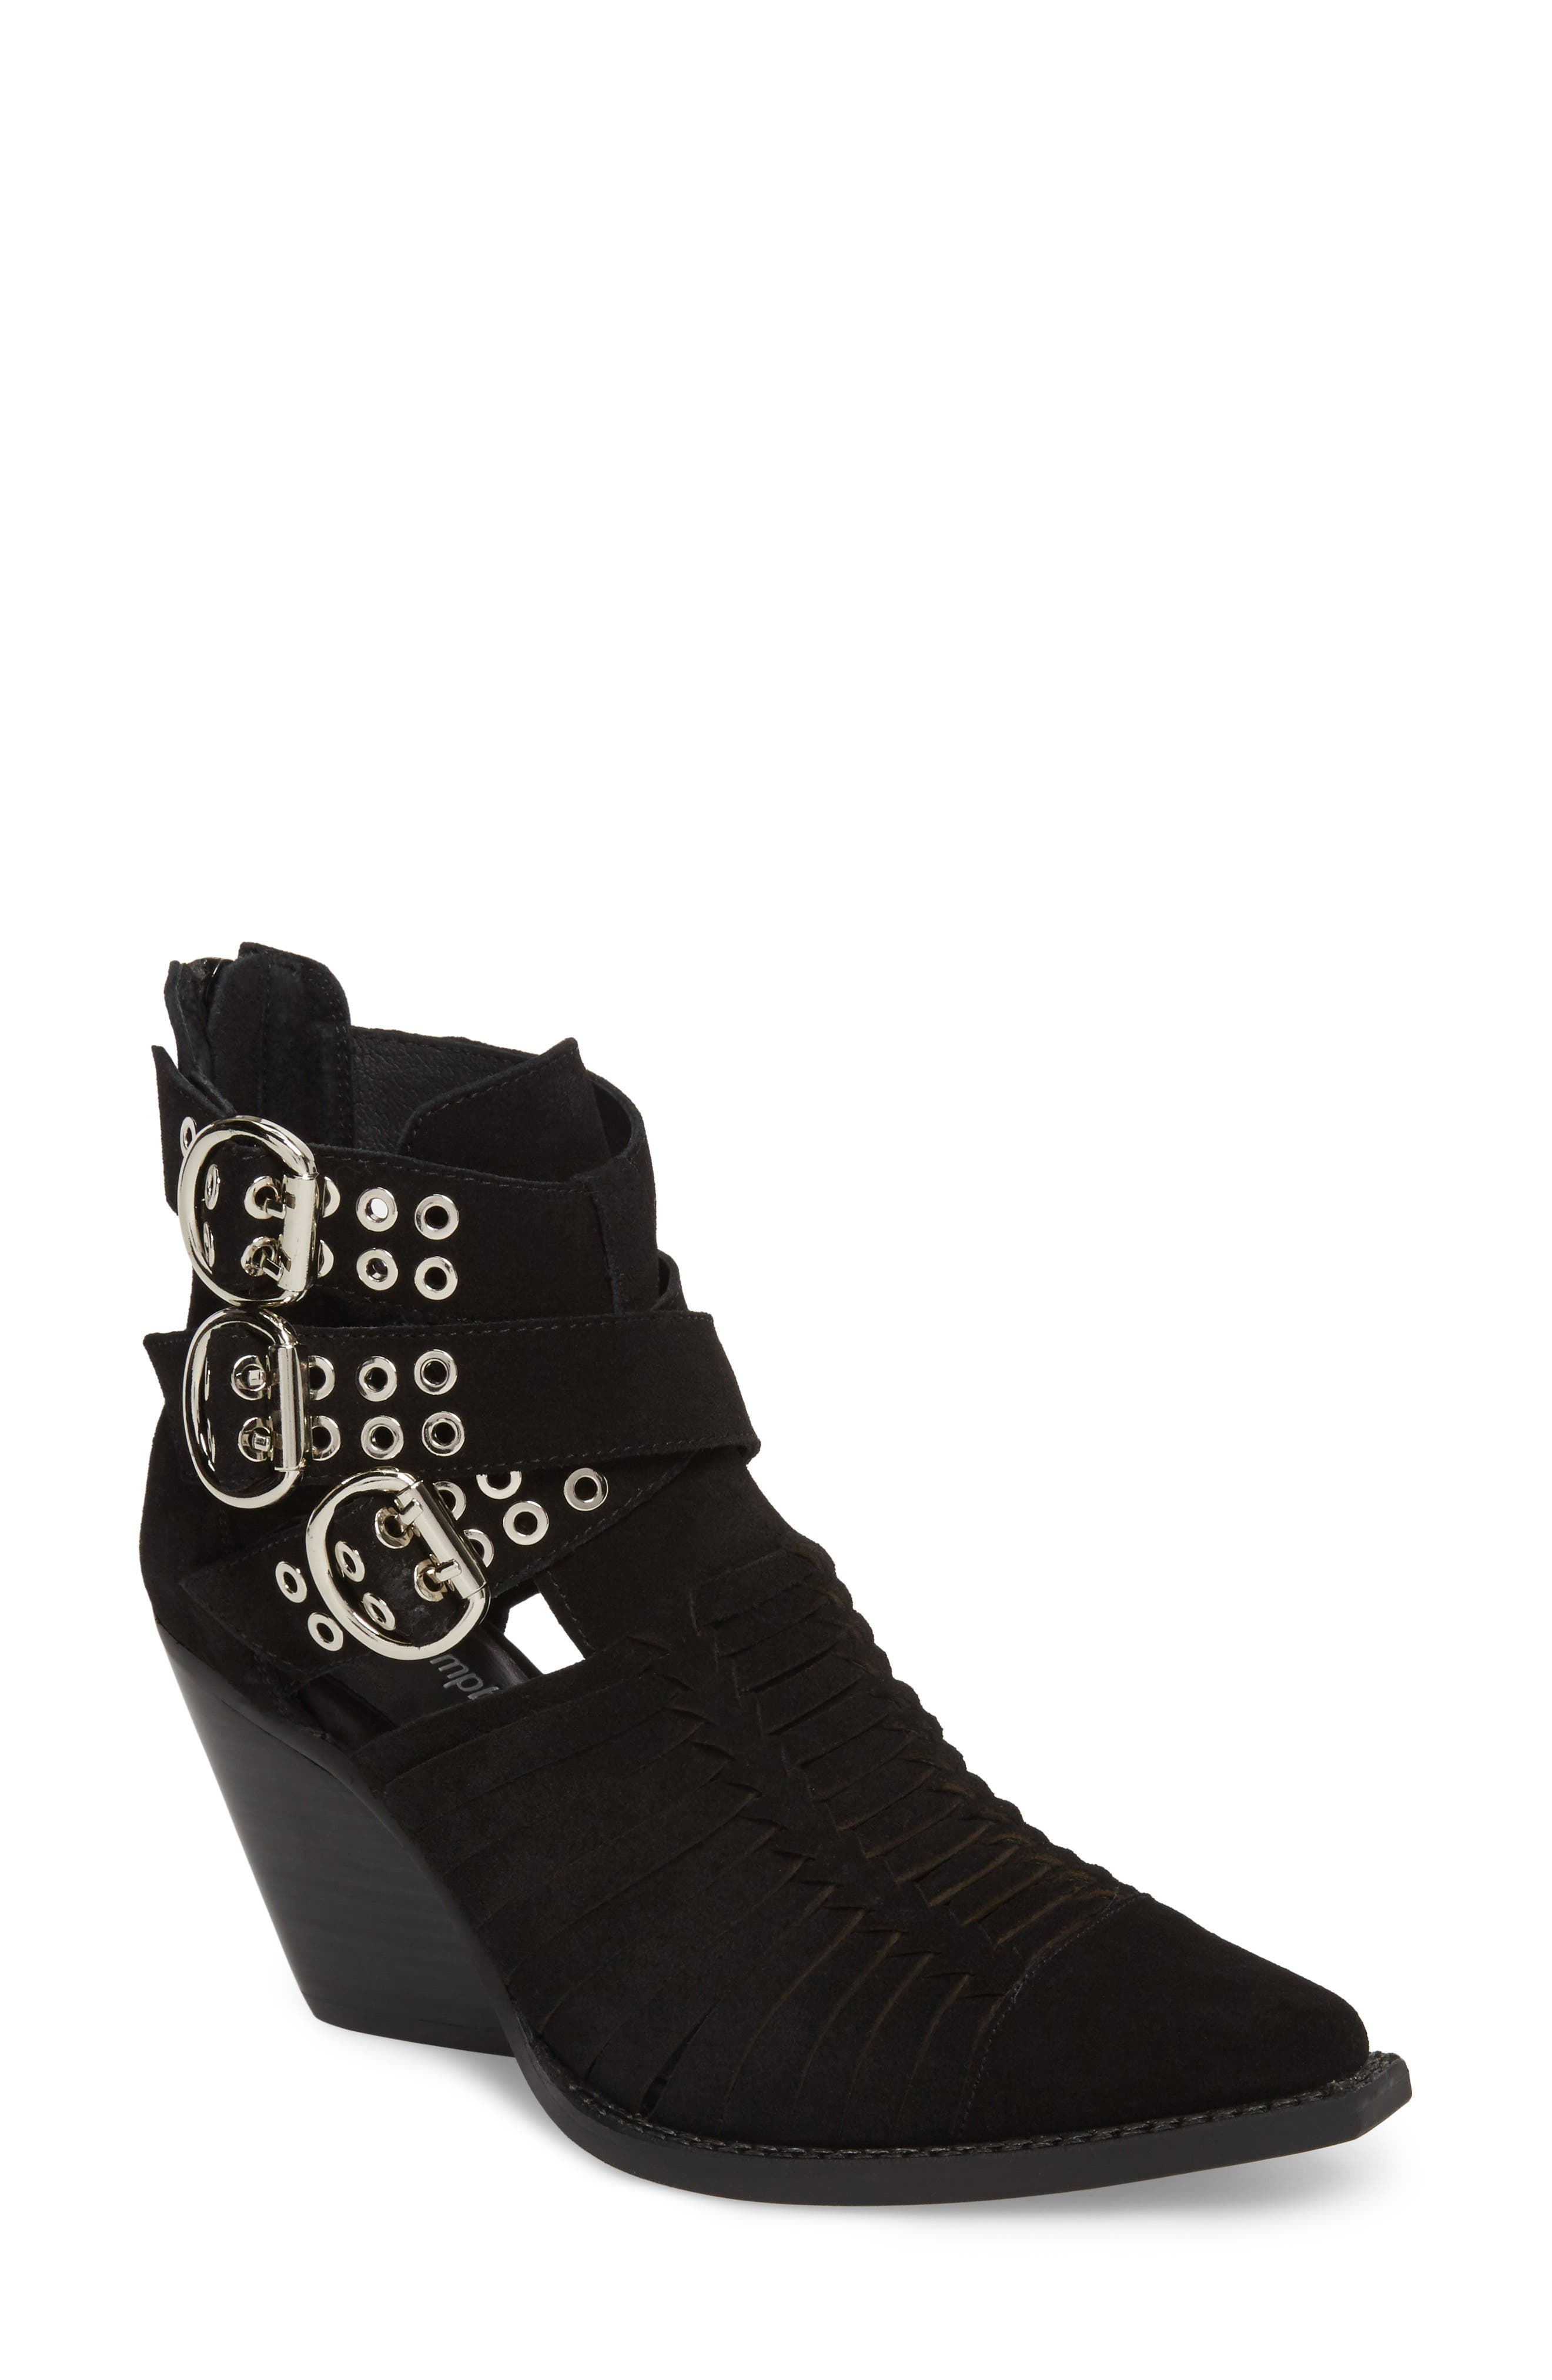 JEFFREY CAMPBELL Jamison Bootie, Main, color, 005